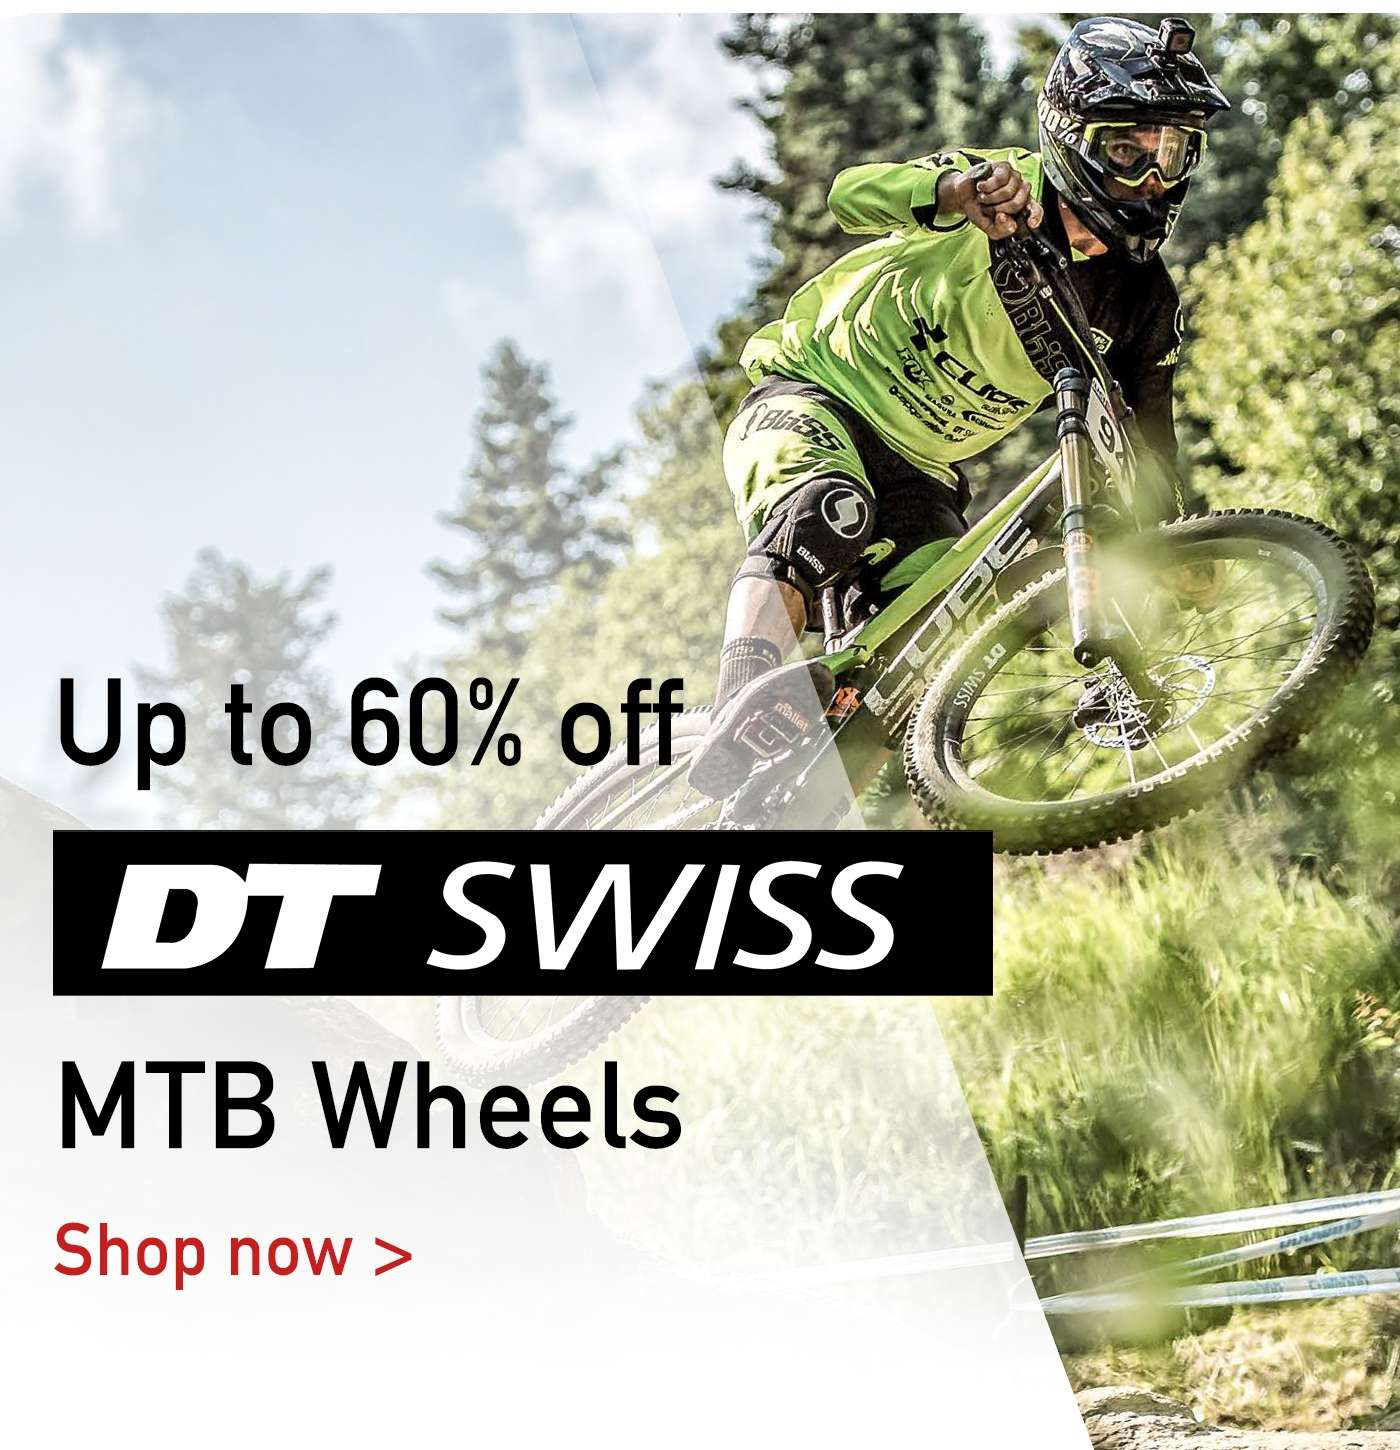 Up to 60% Off DT SWISS MTB Wheels